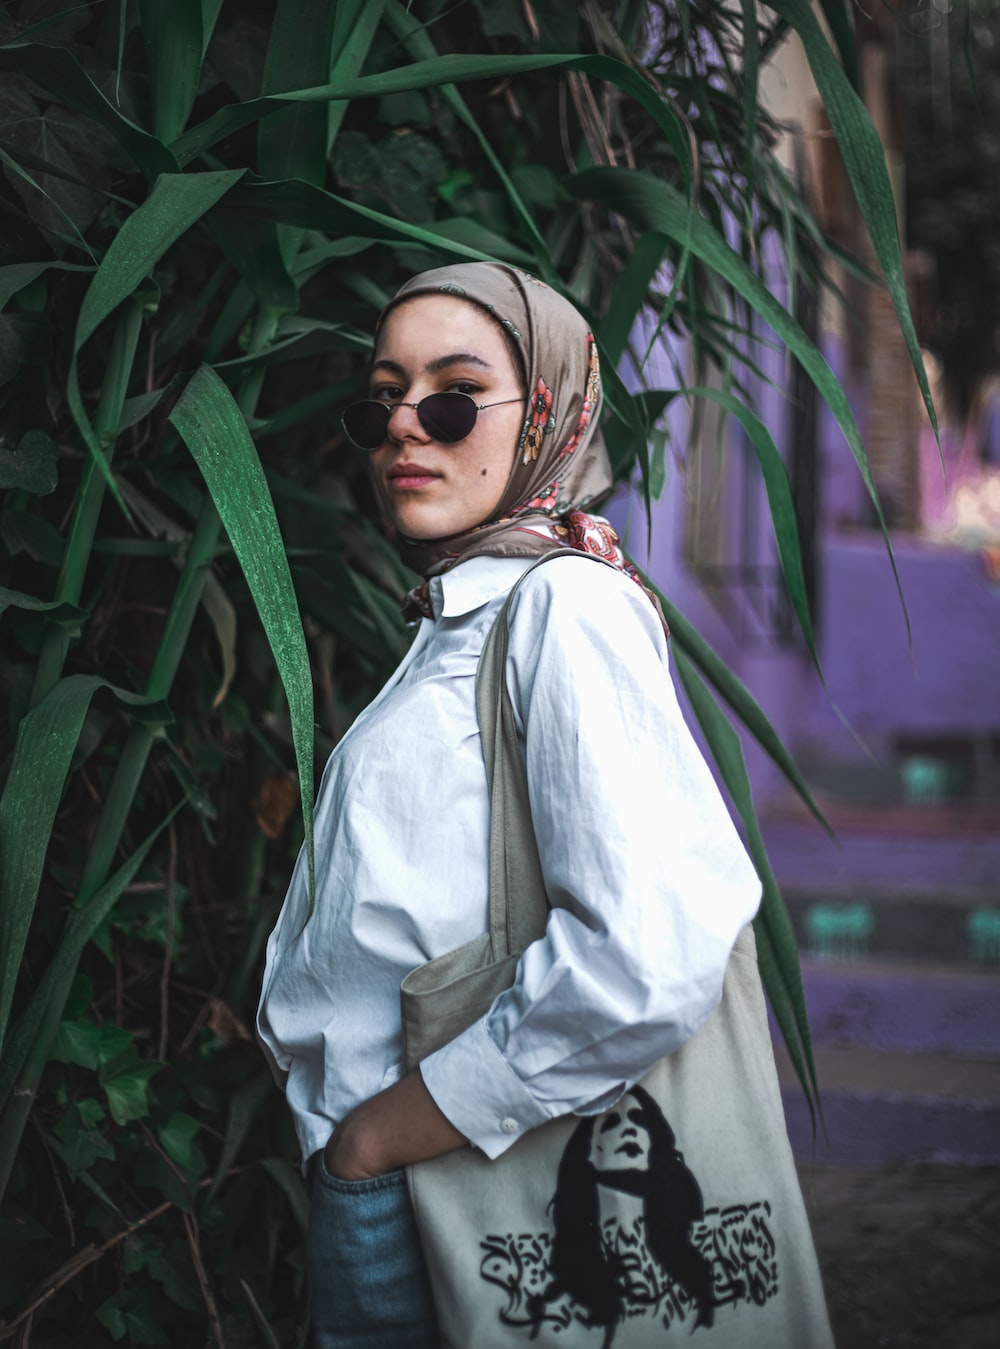 woman in white hijab standing near green plant